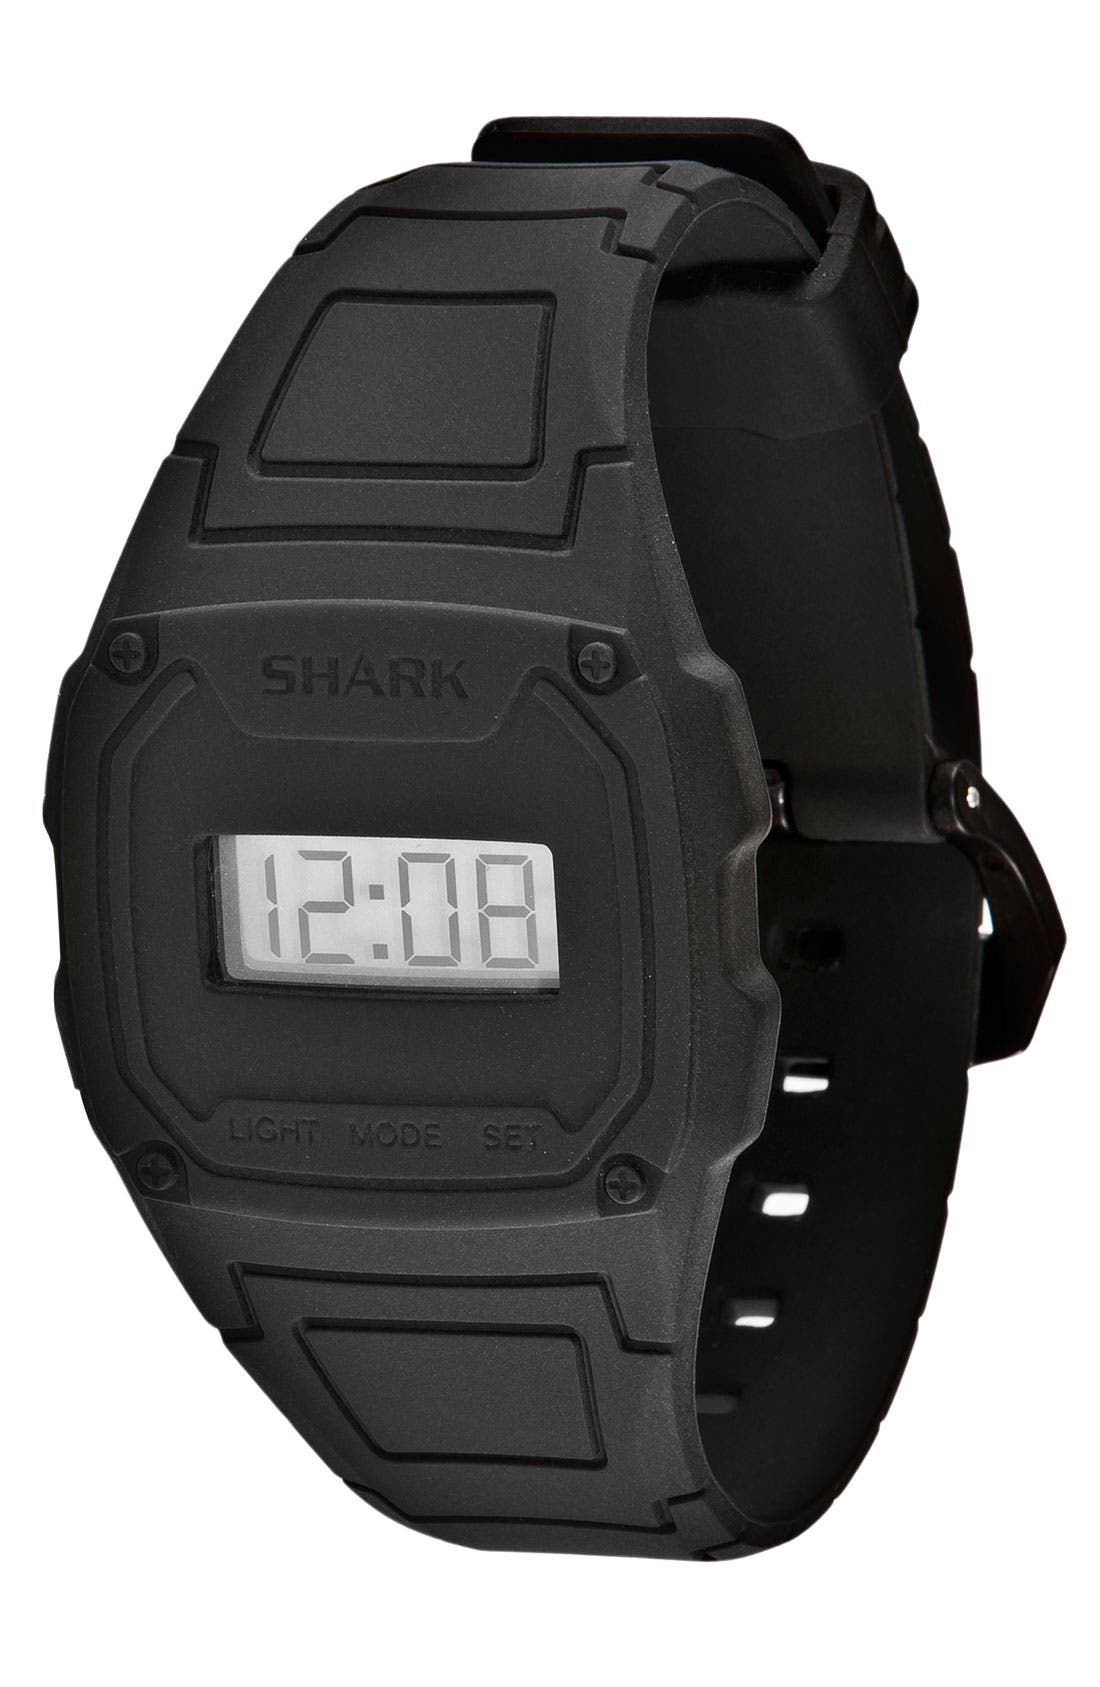 Main Image - Freestyle 'Shark Slim' Digital Watch, 38mm